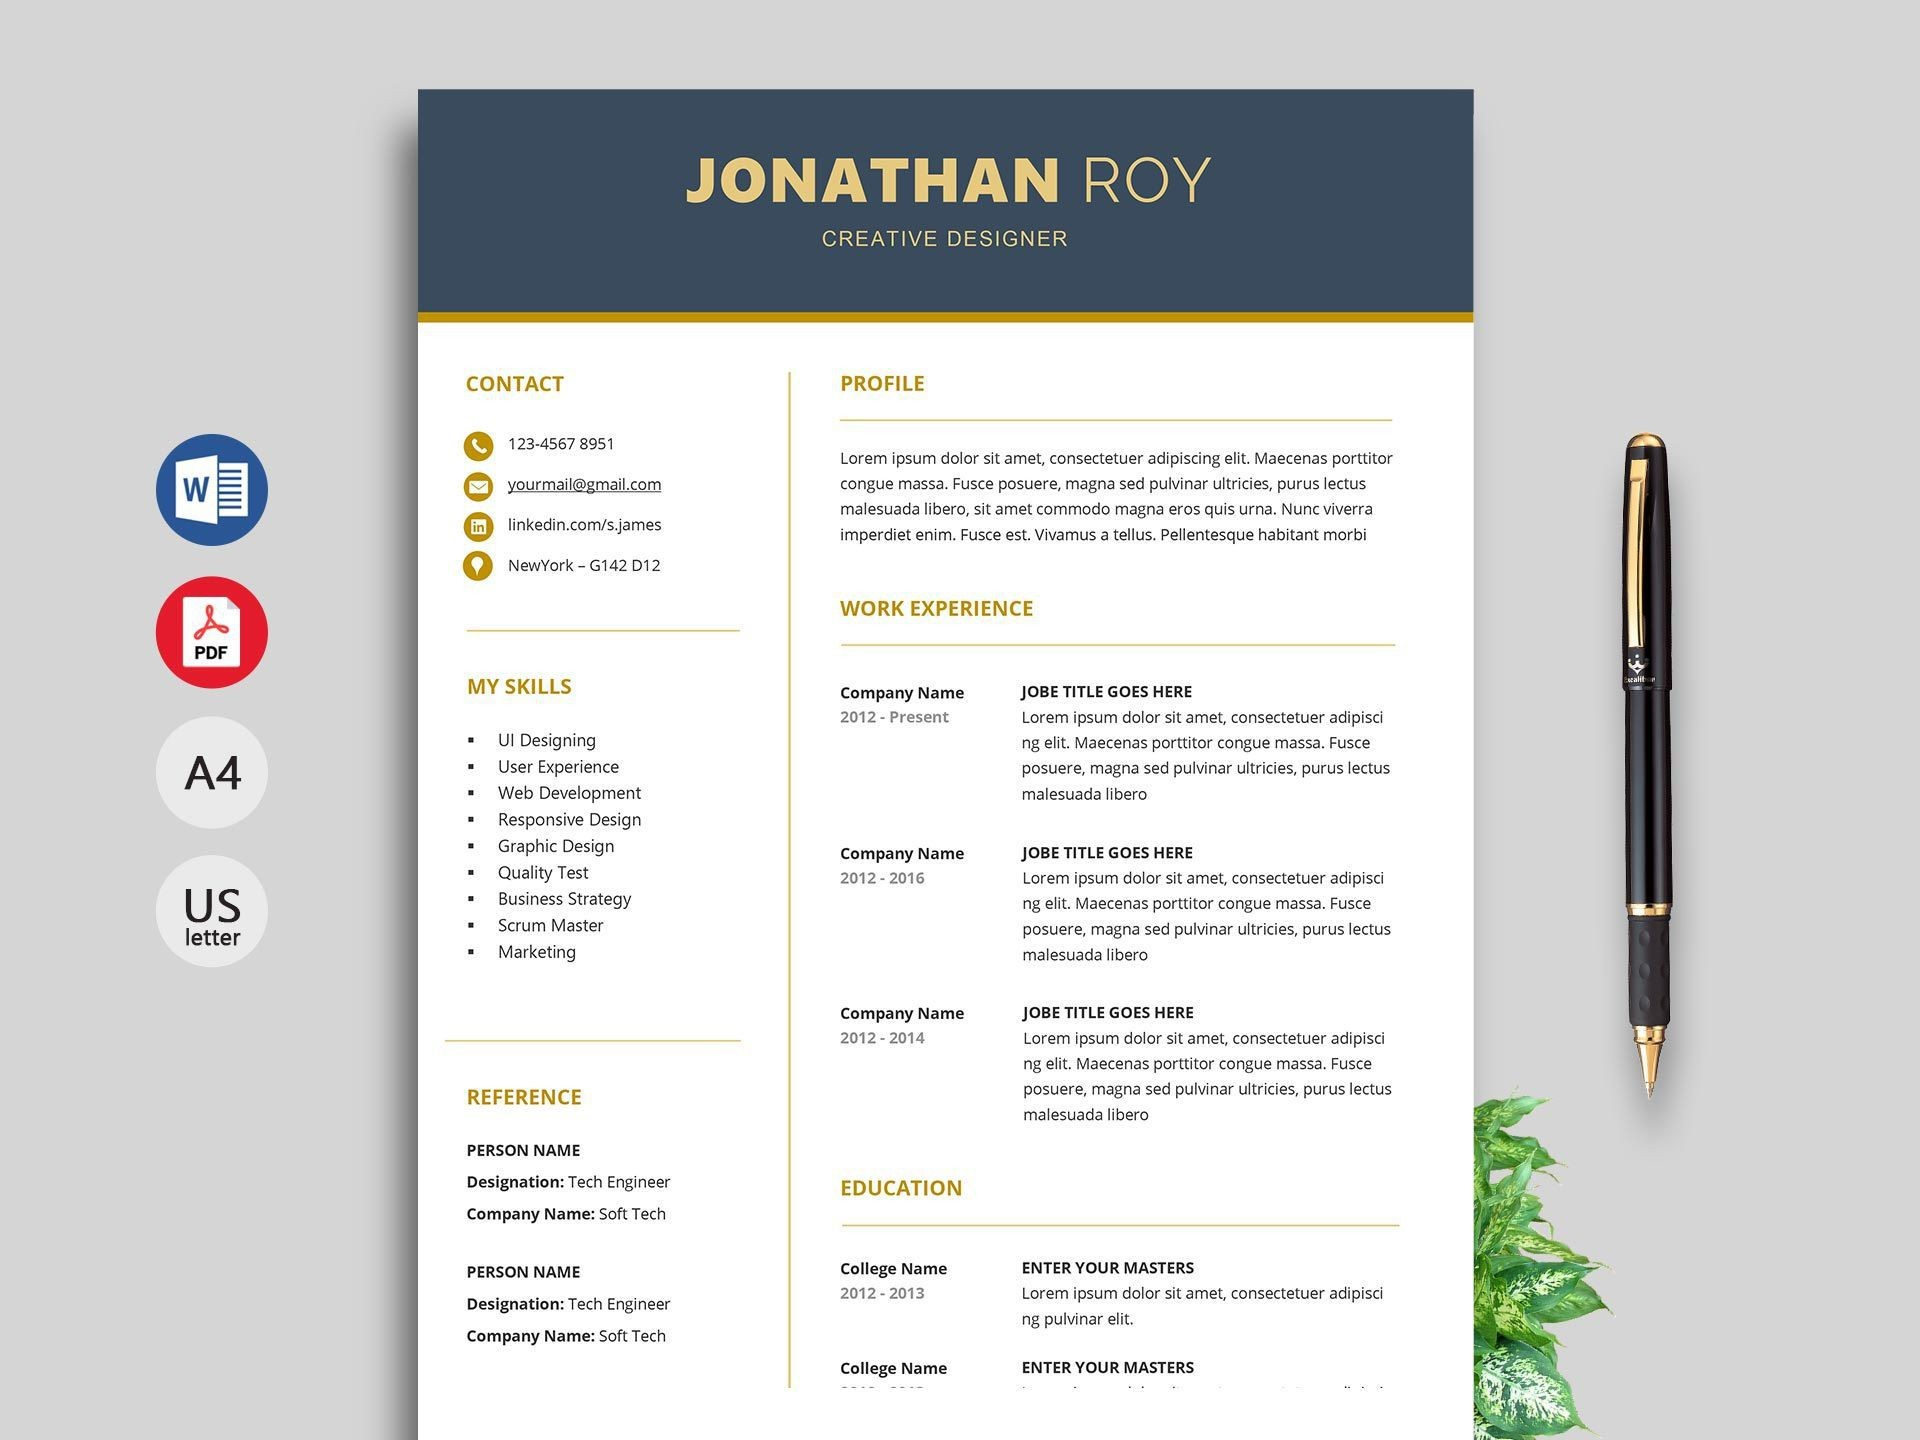 005 Shocking Resume Format Example Free Download High Definition 1920